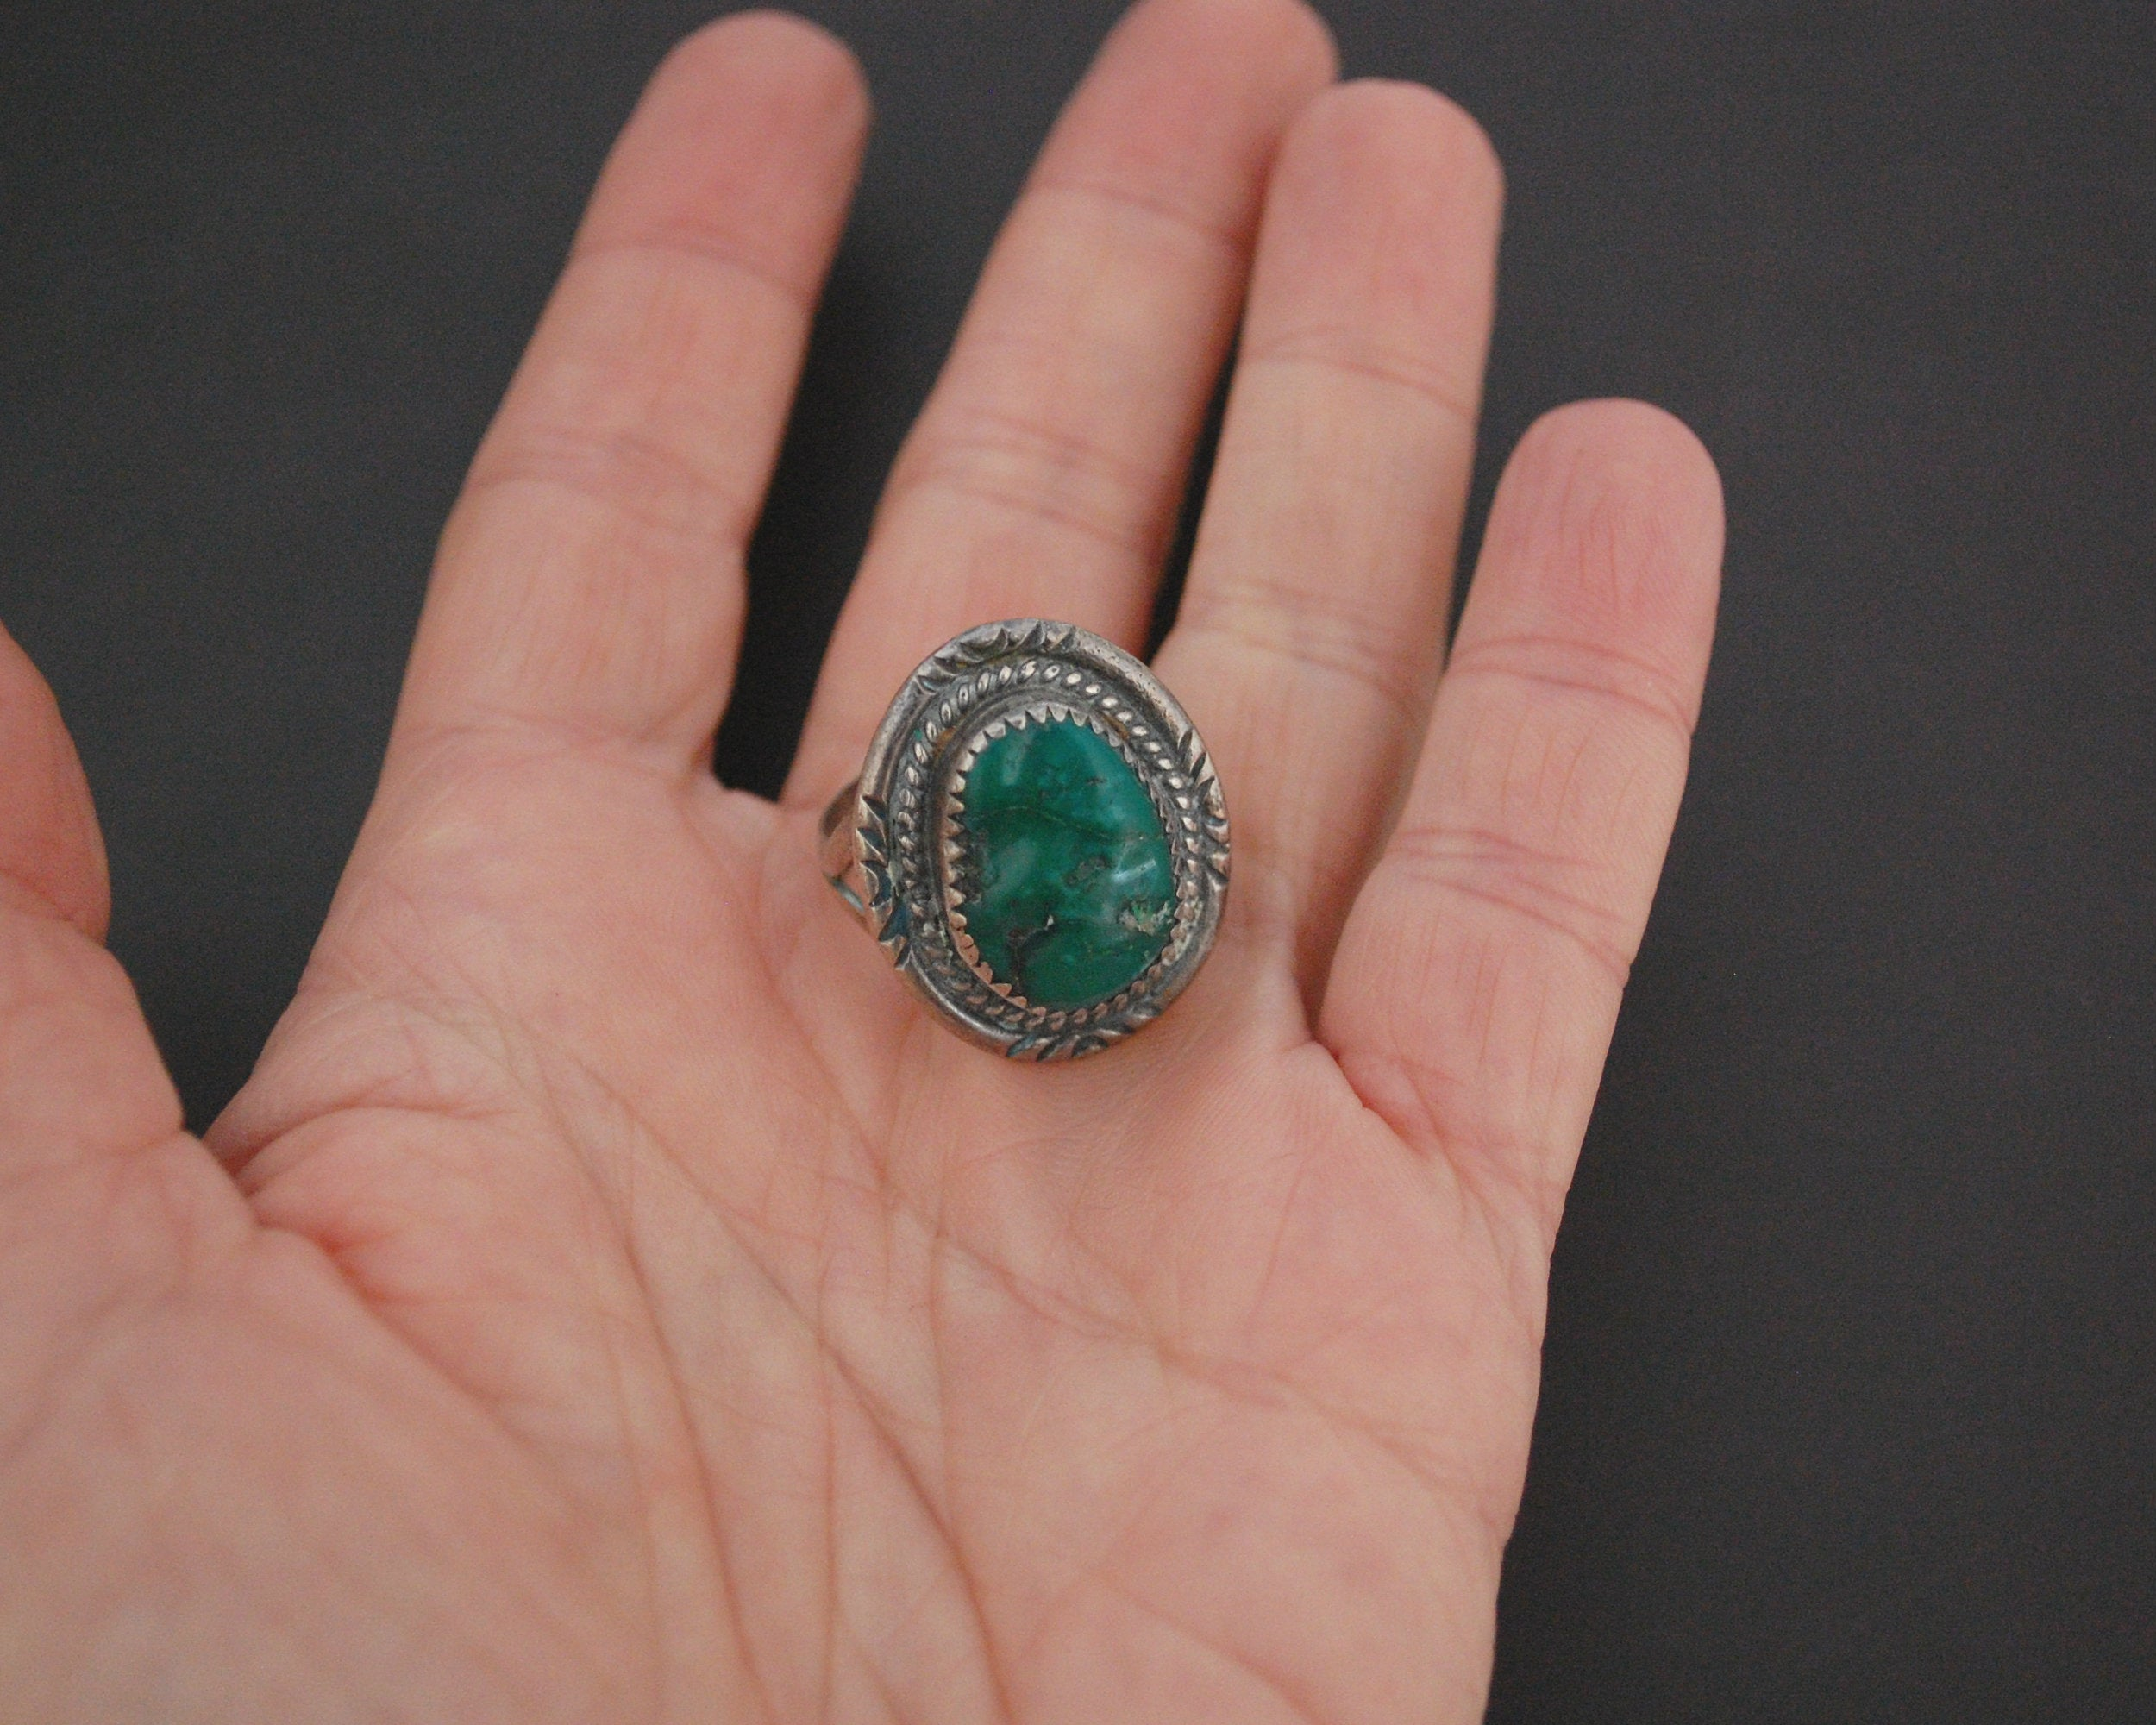 Native American Navajo Turquoise Ring - Size 8.5 - Signed M